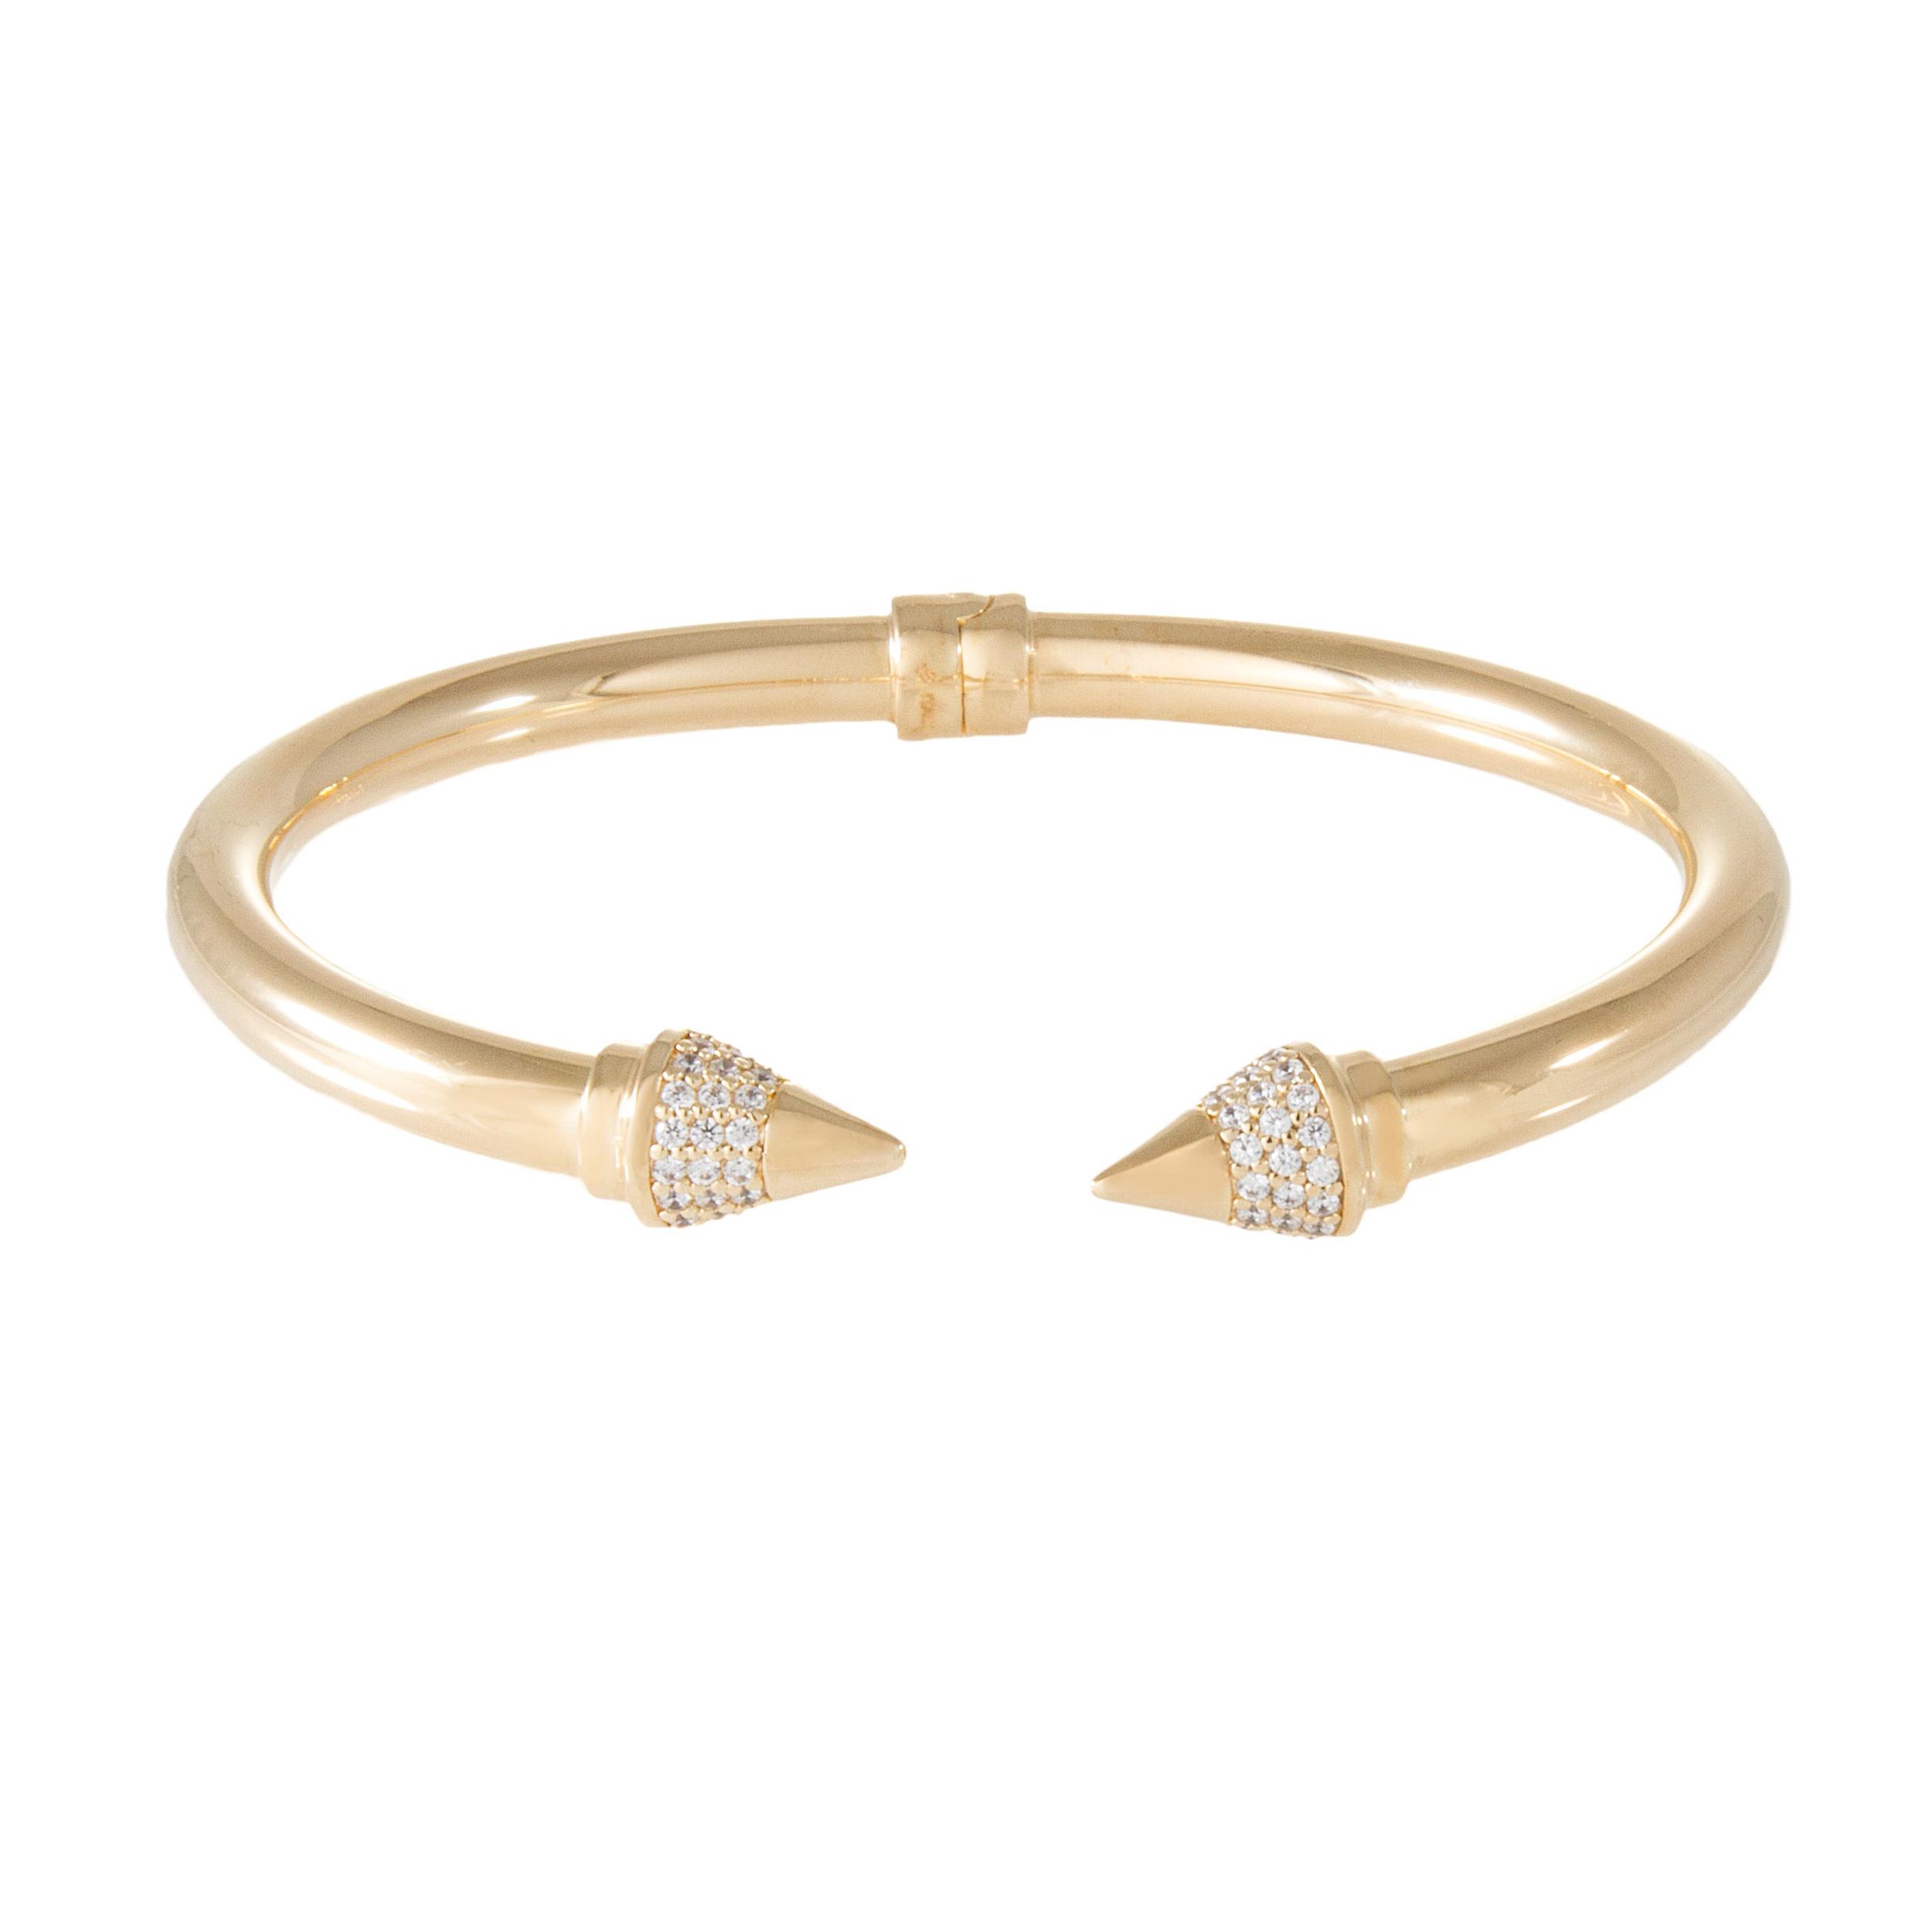 Bangle by Bronzallure - from Originals Jewellers & Gallery